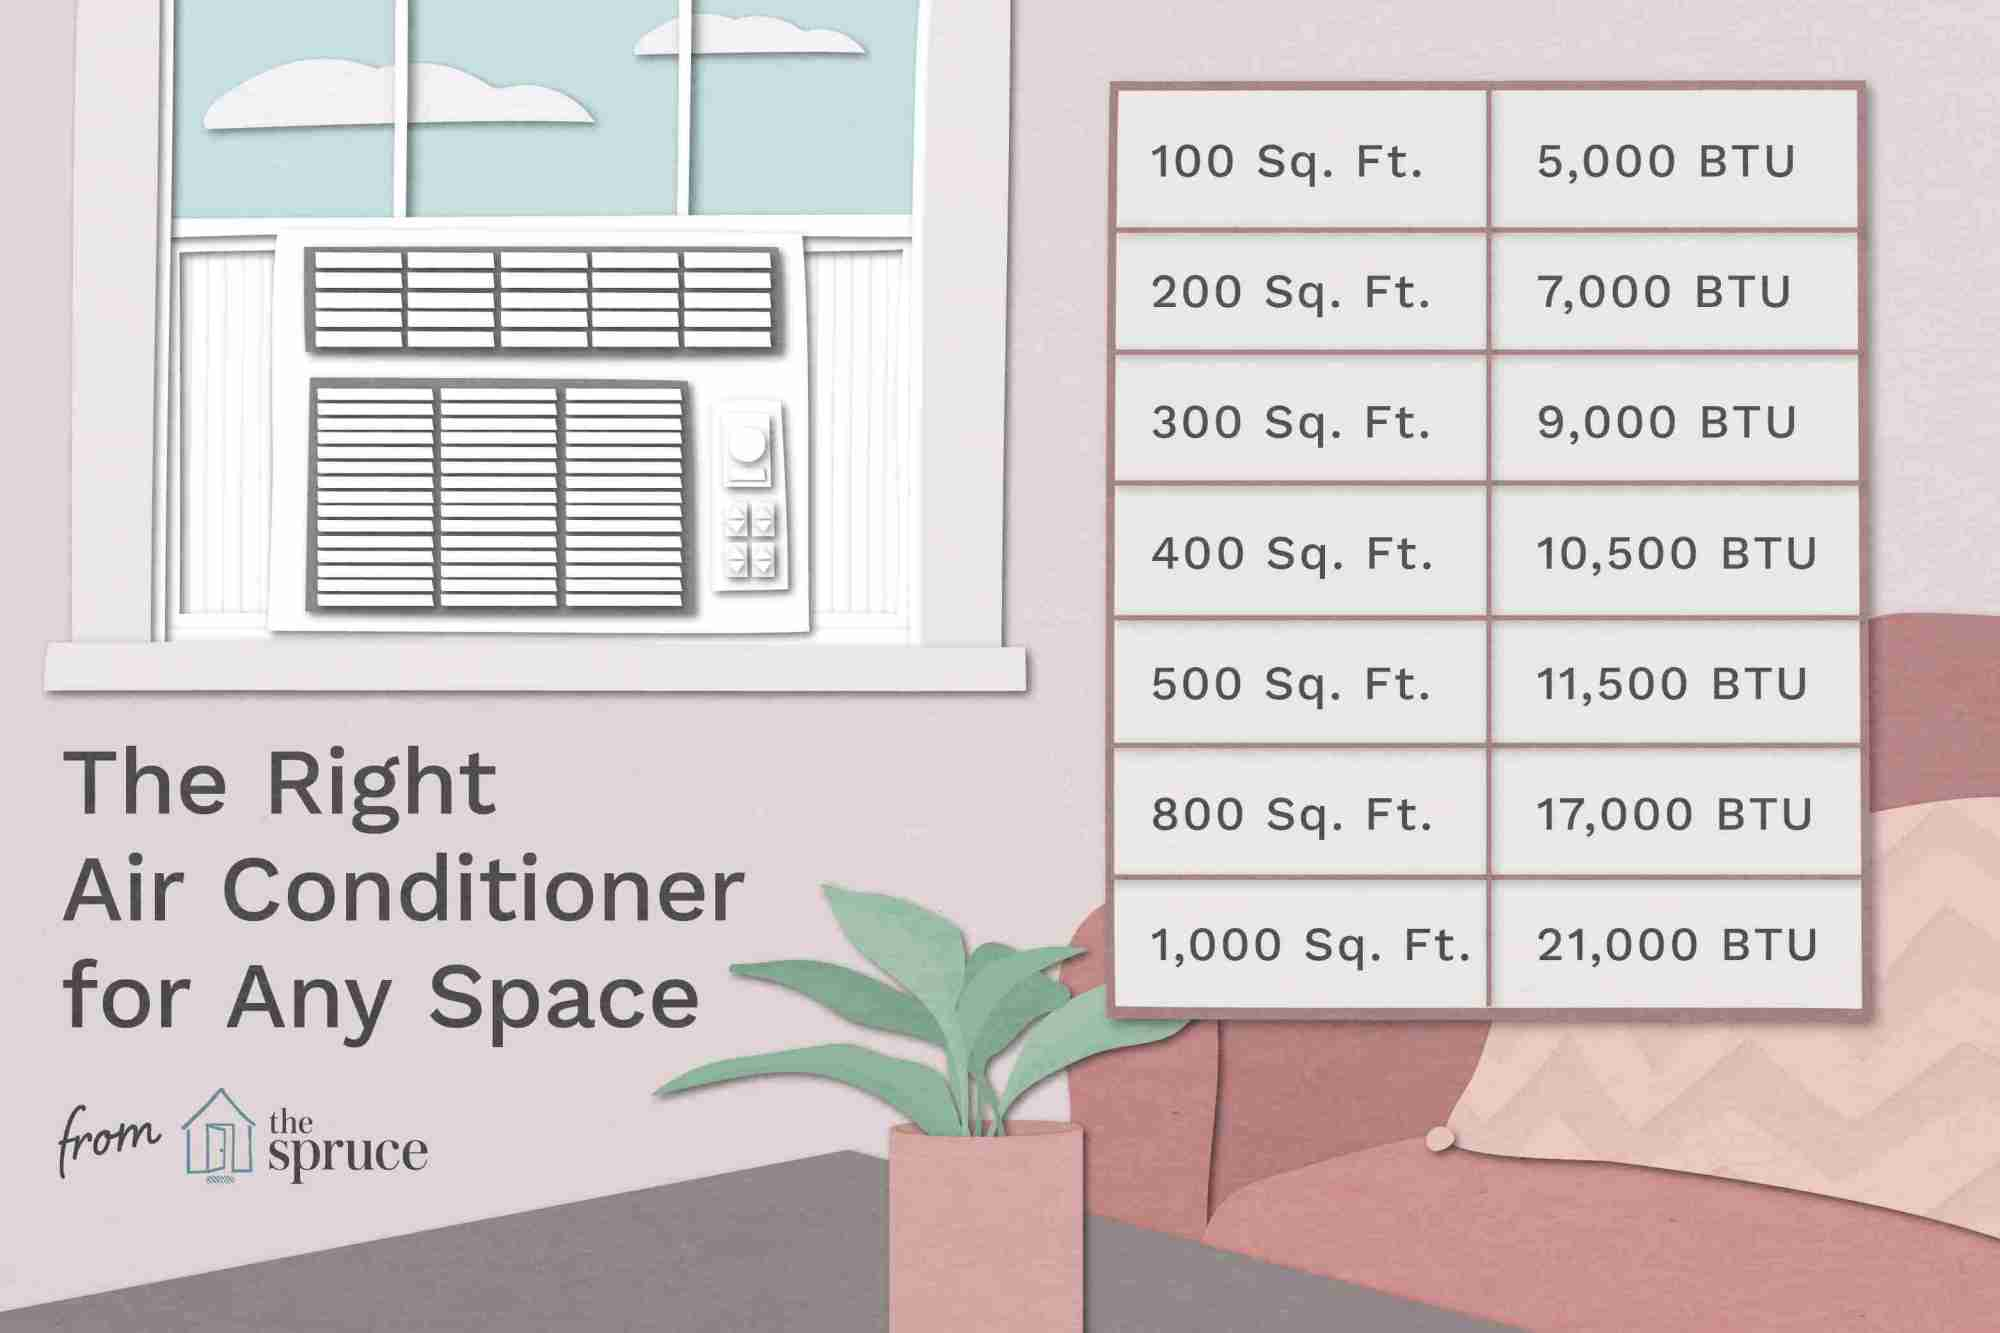 hight resolution of illustration of air conditioner chart for btus and room size